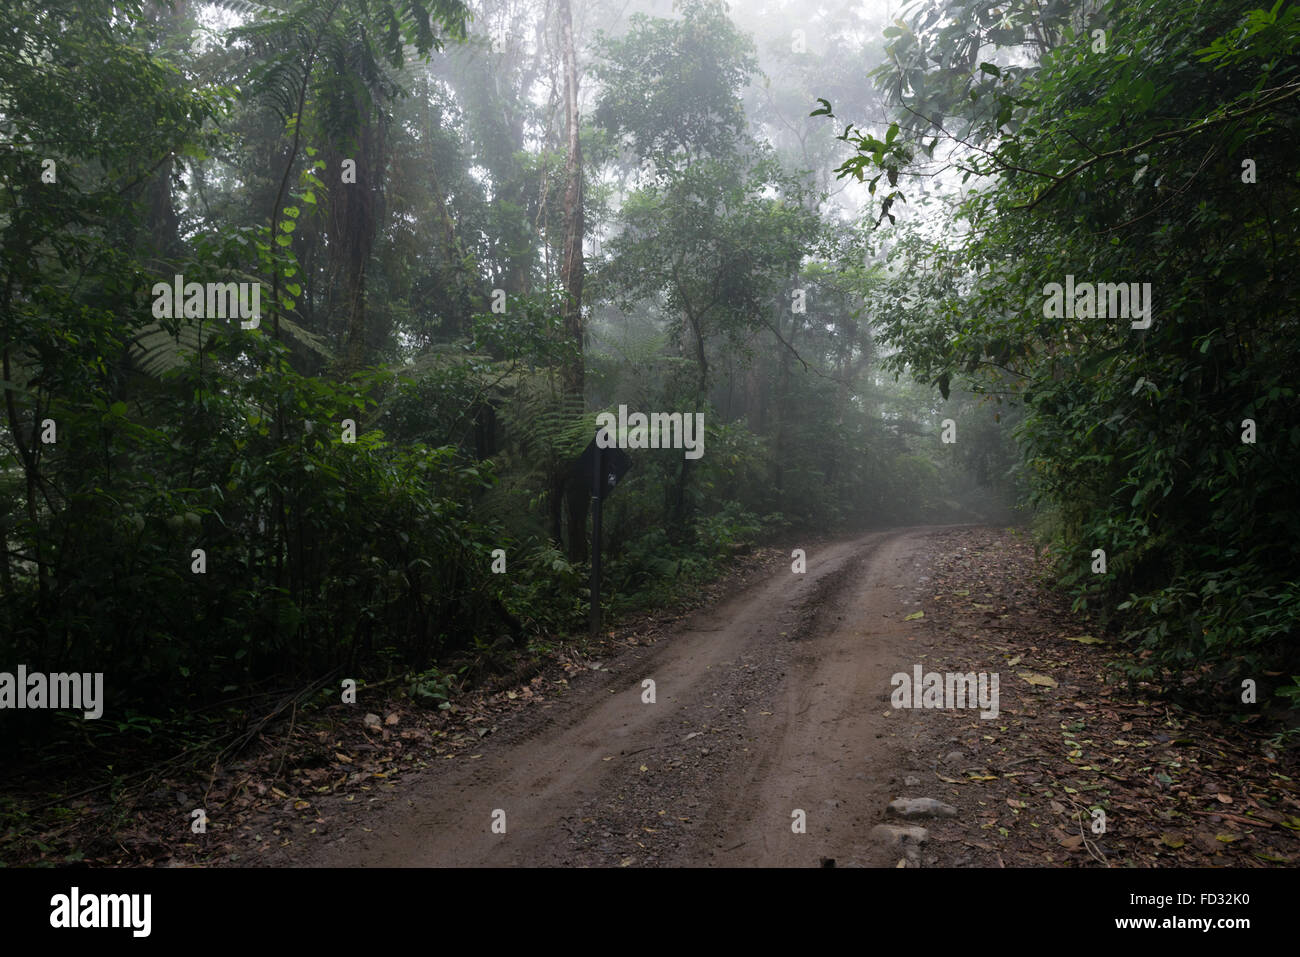 A road passing through a rainforest - Stock Image